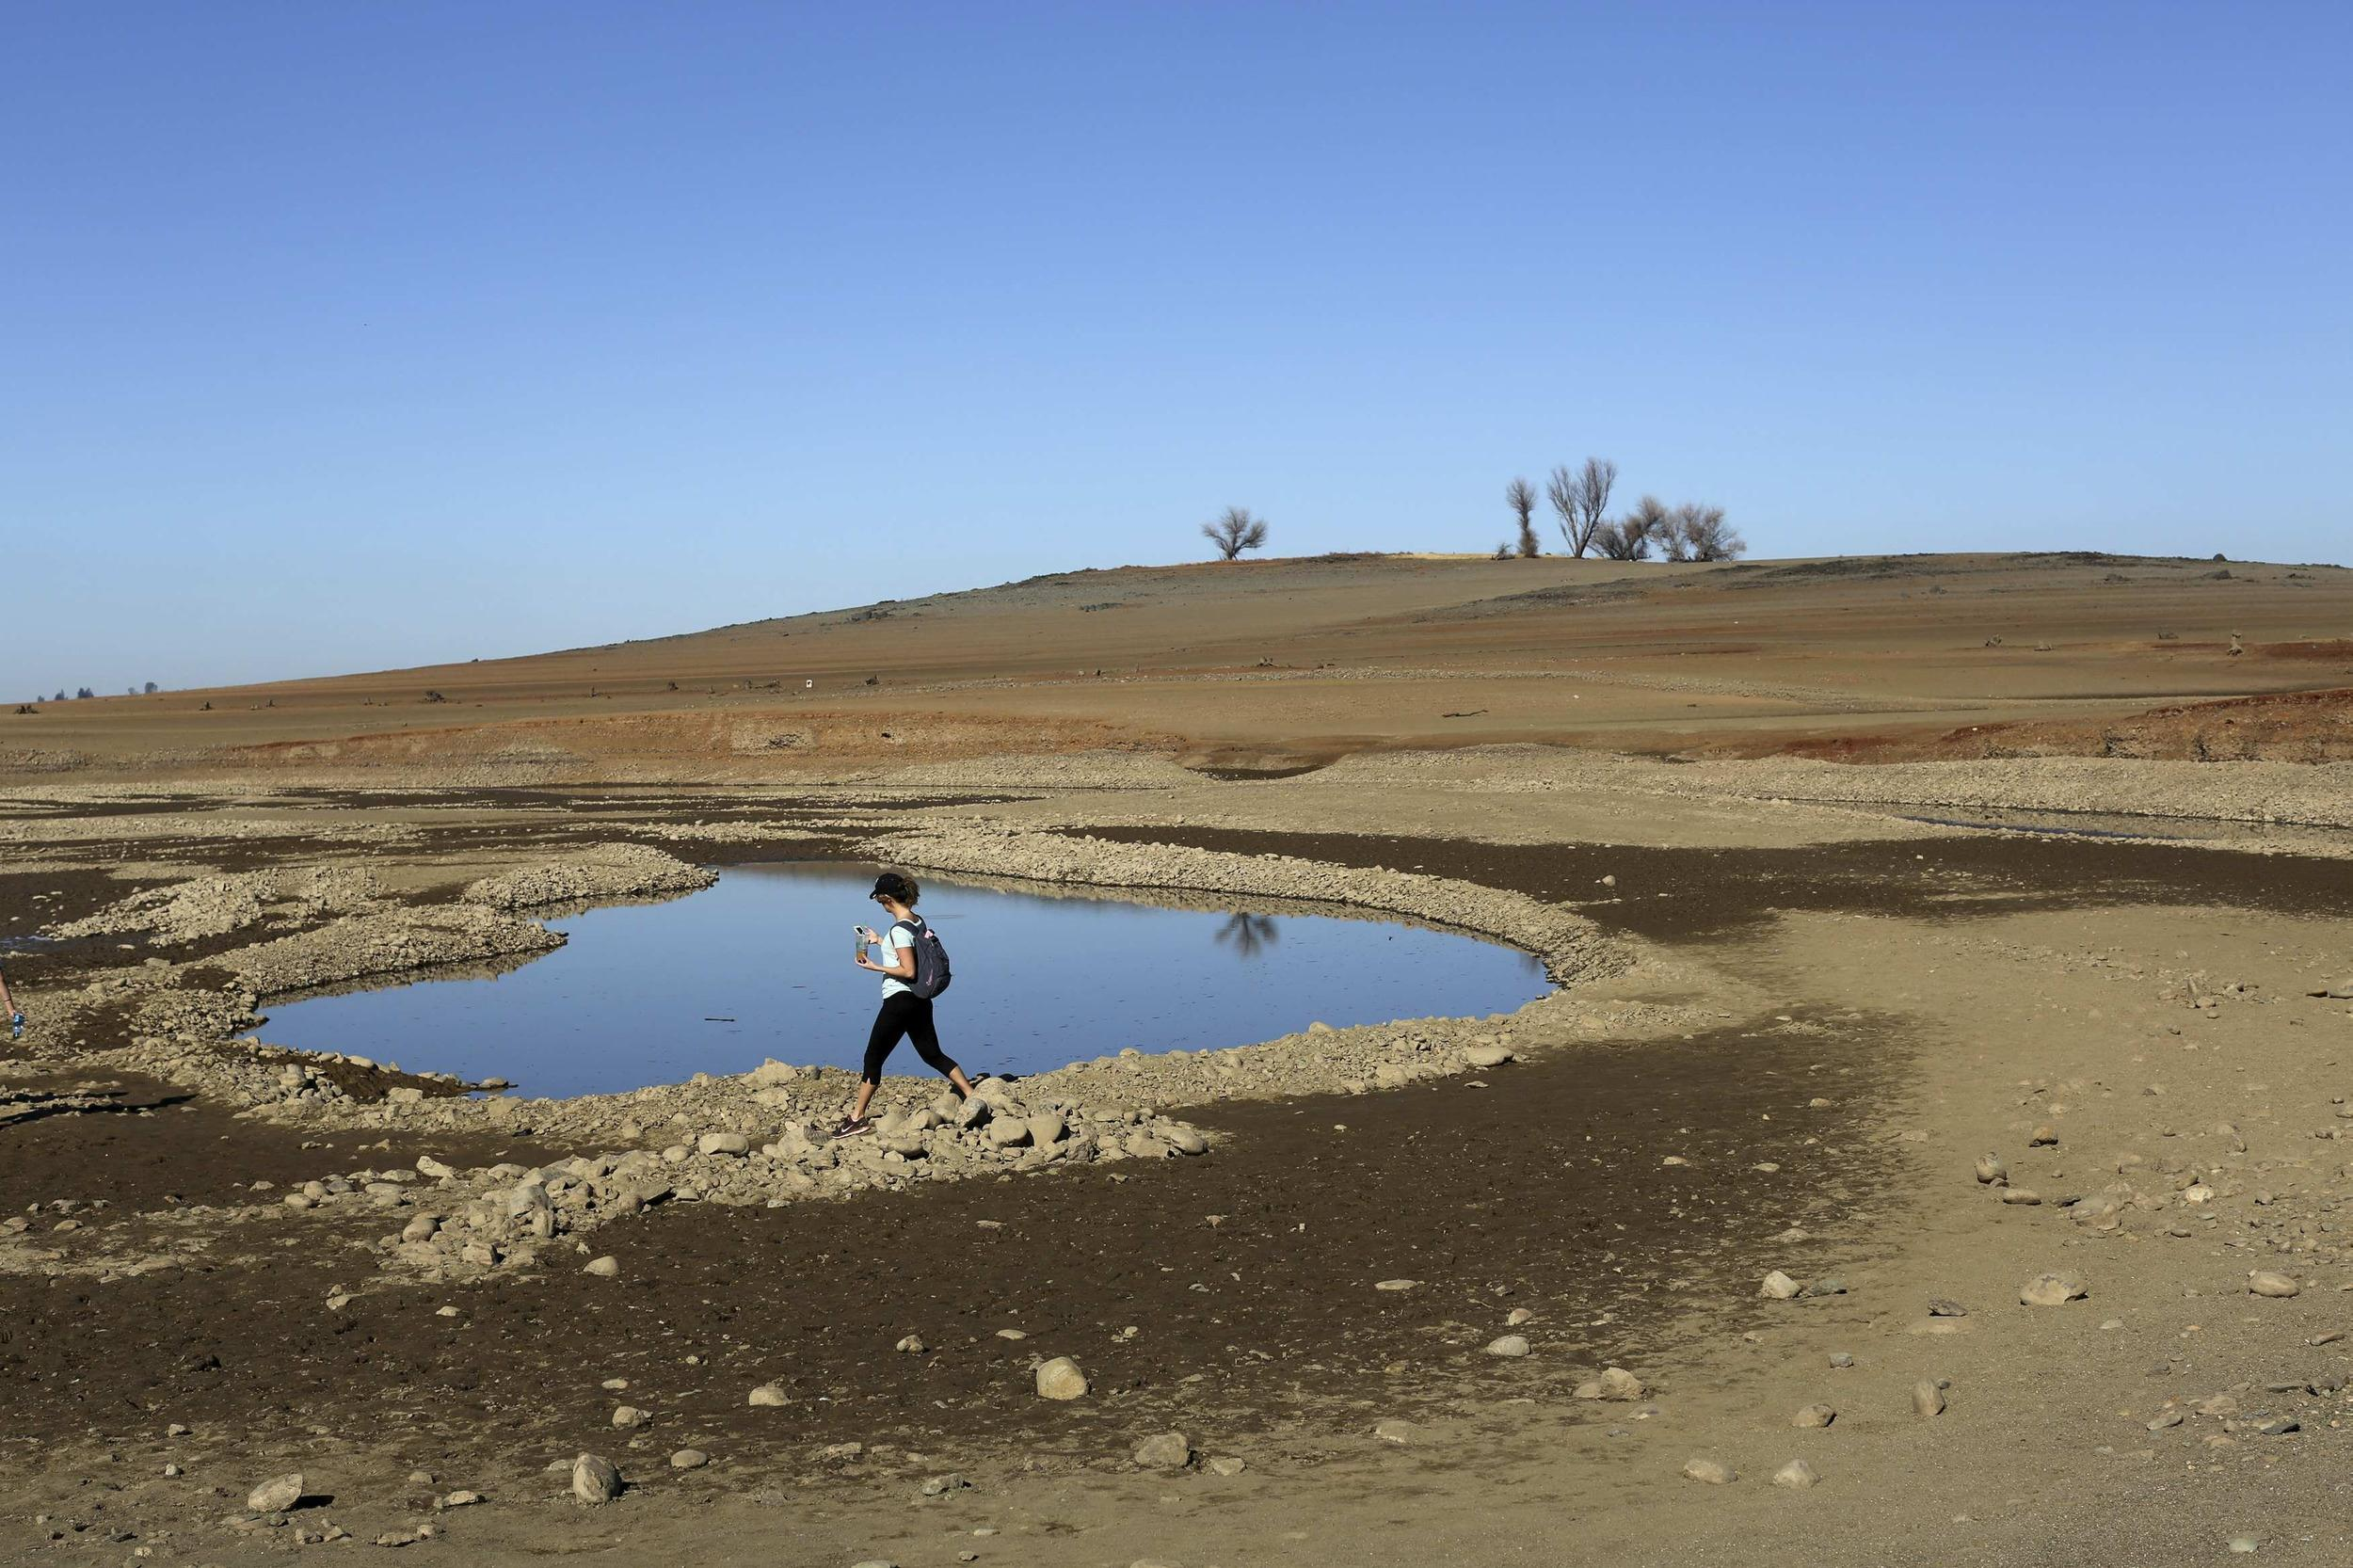 A visitor walks near the receding waters at Folsom Lake, in Folsom, California.